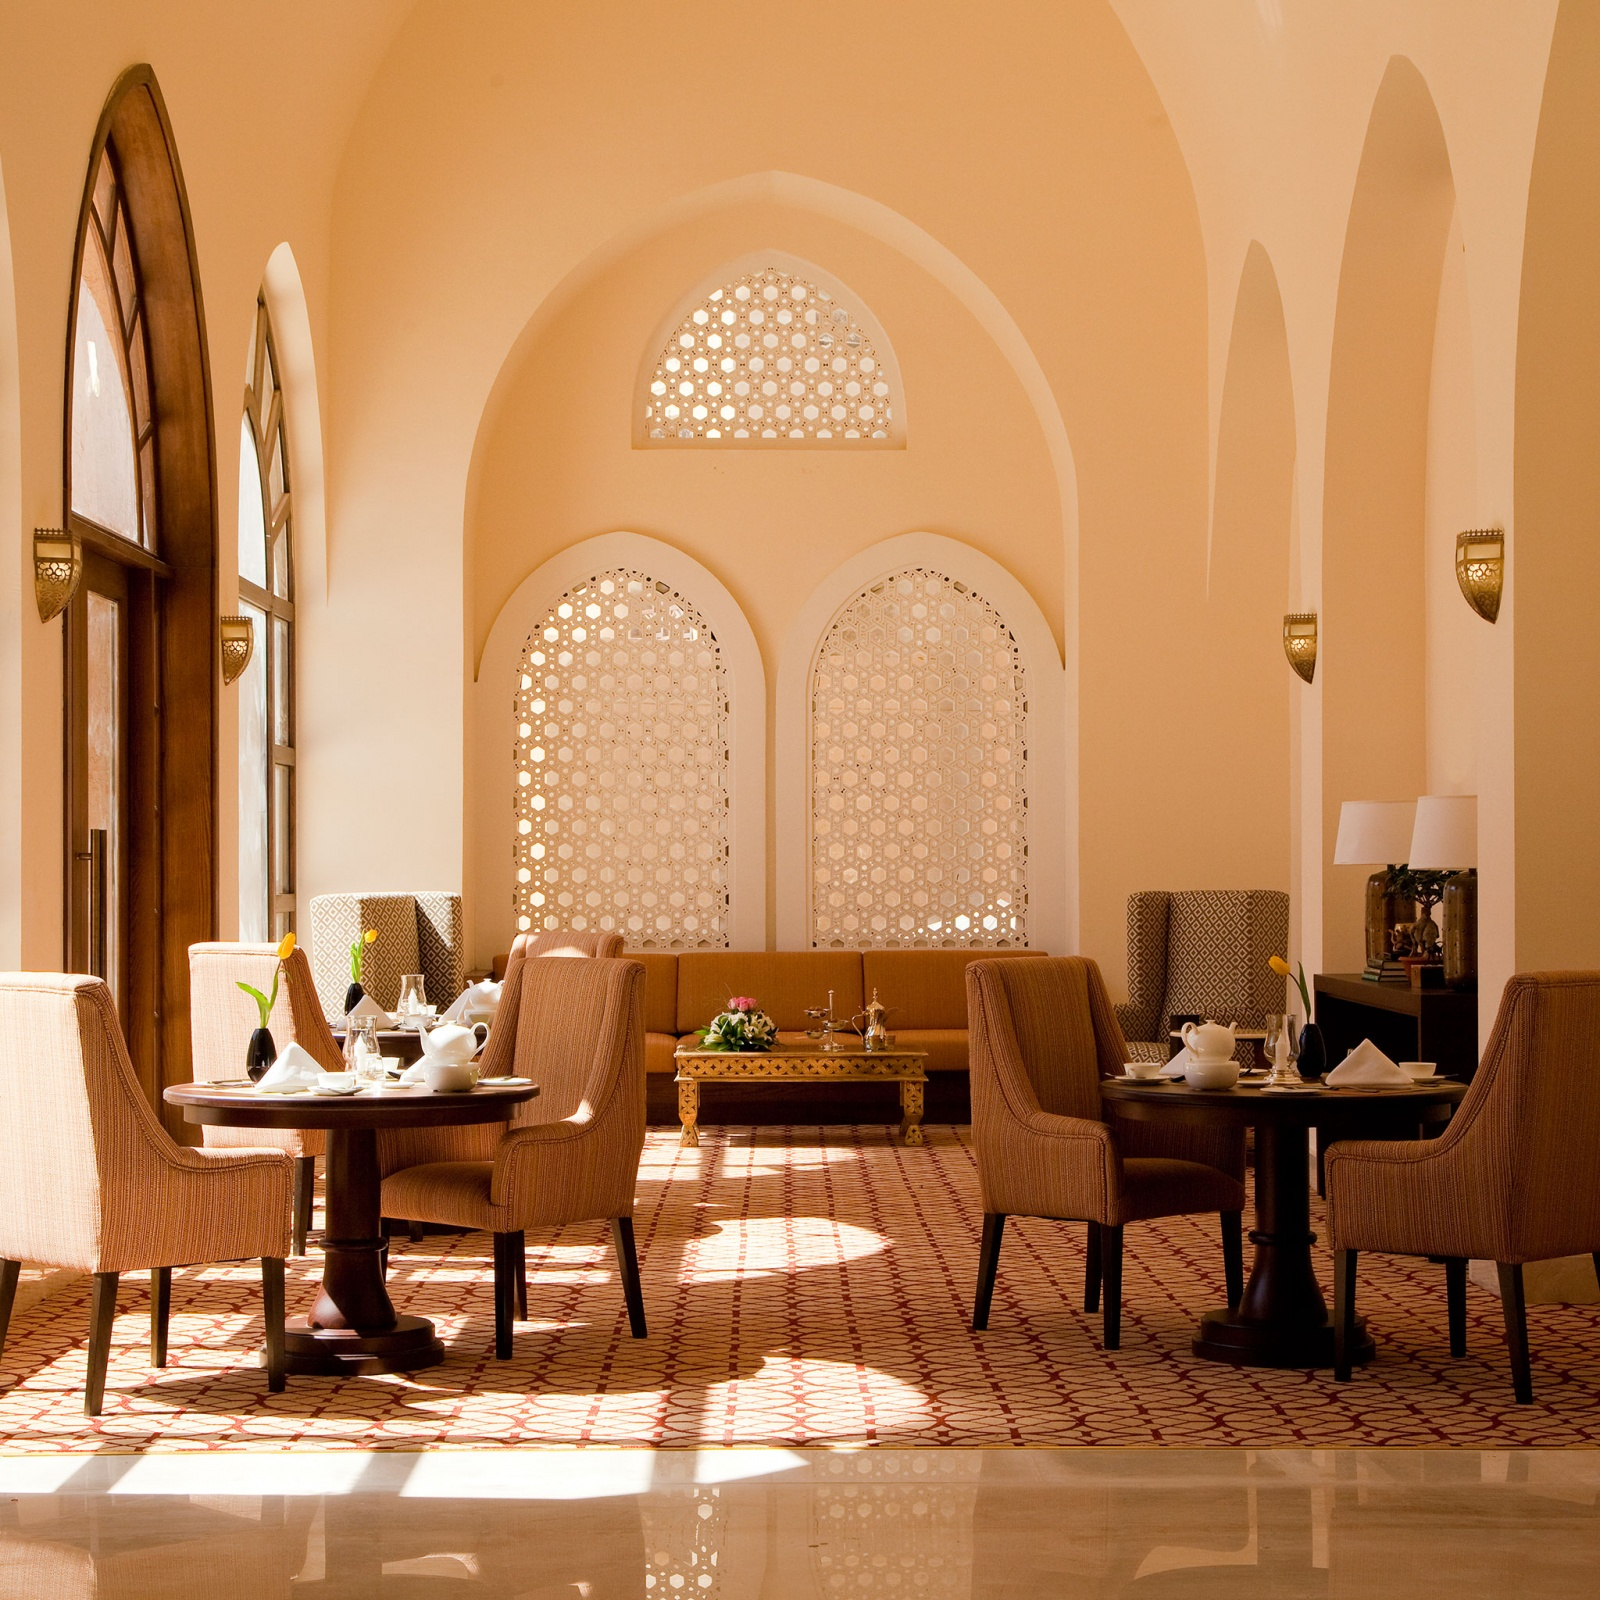 Middle East Hotels